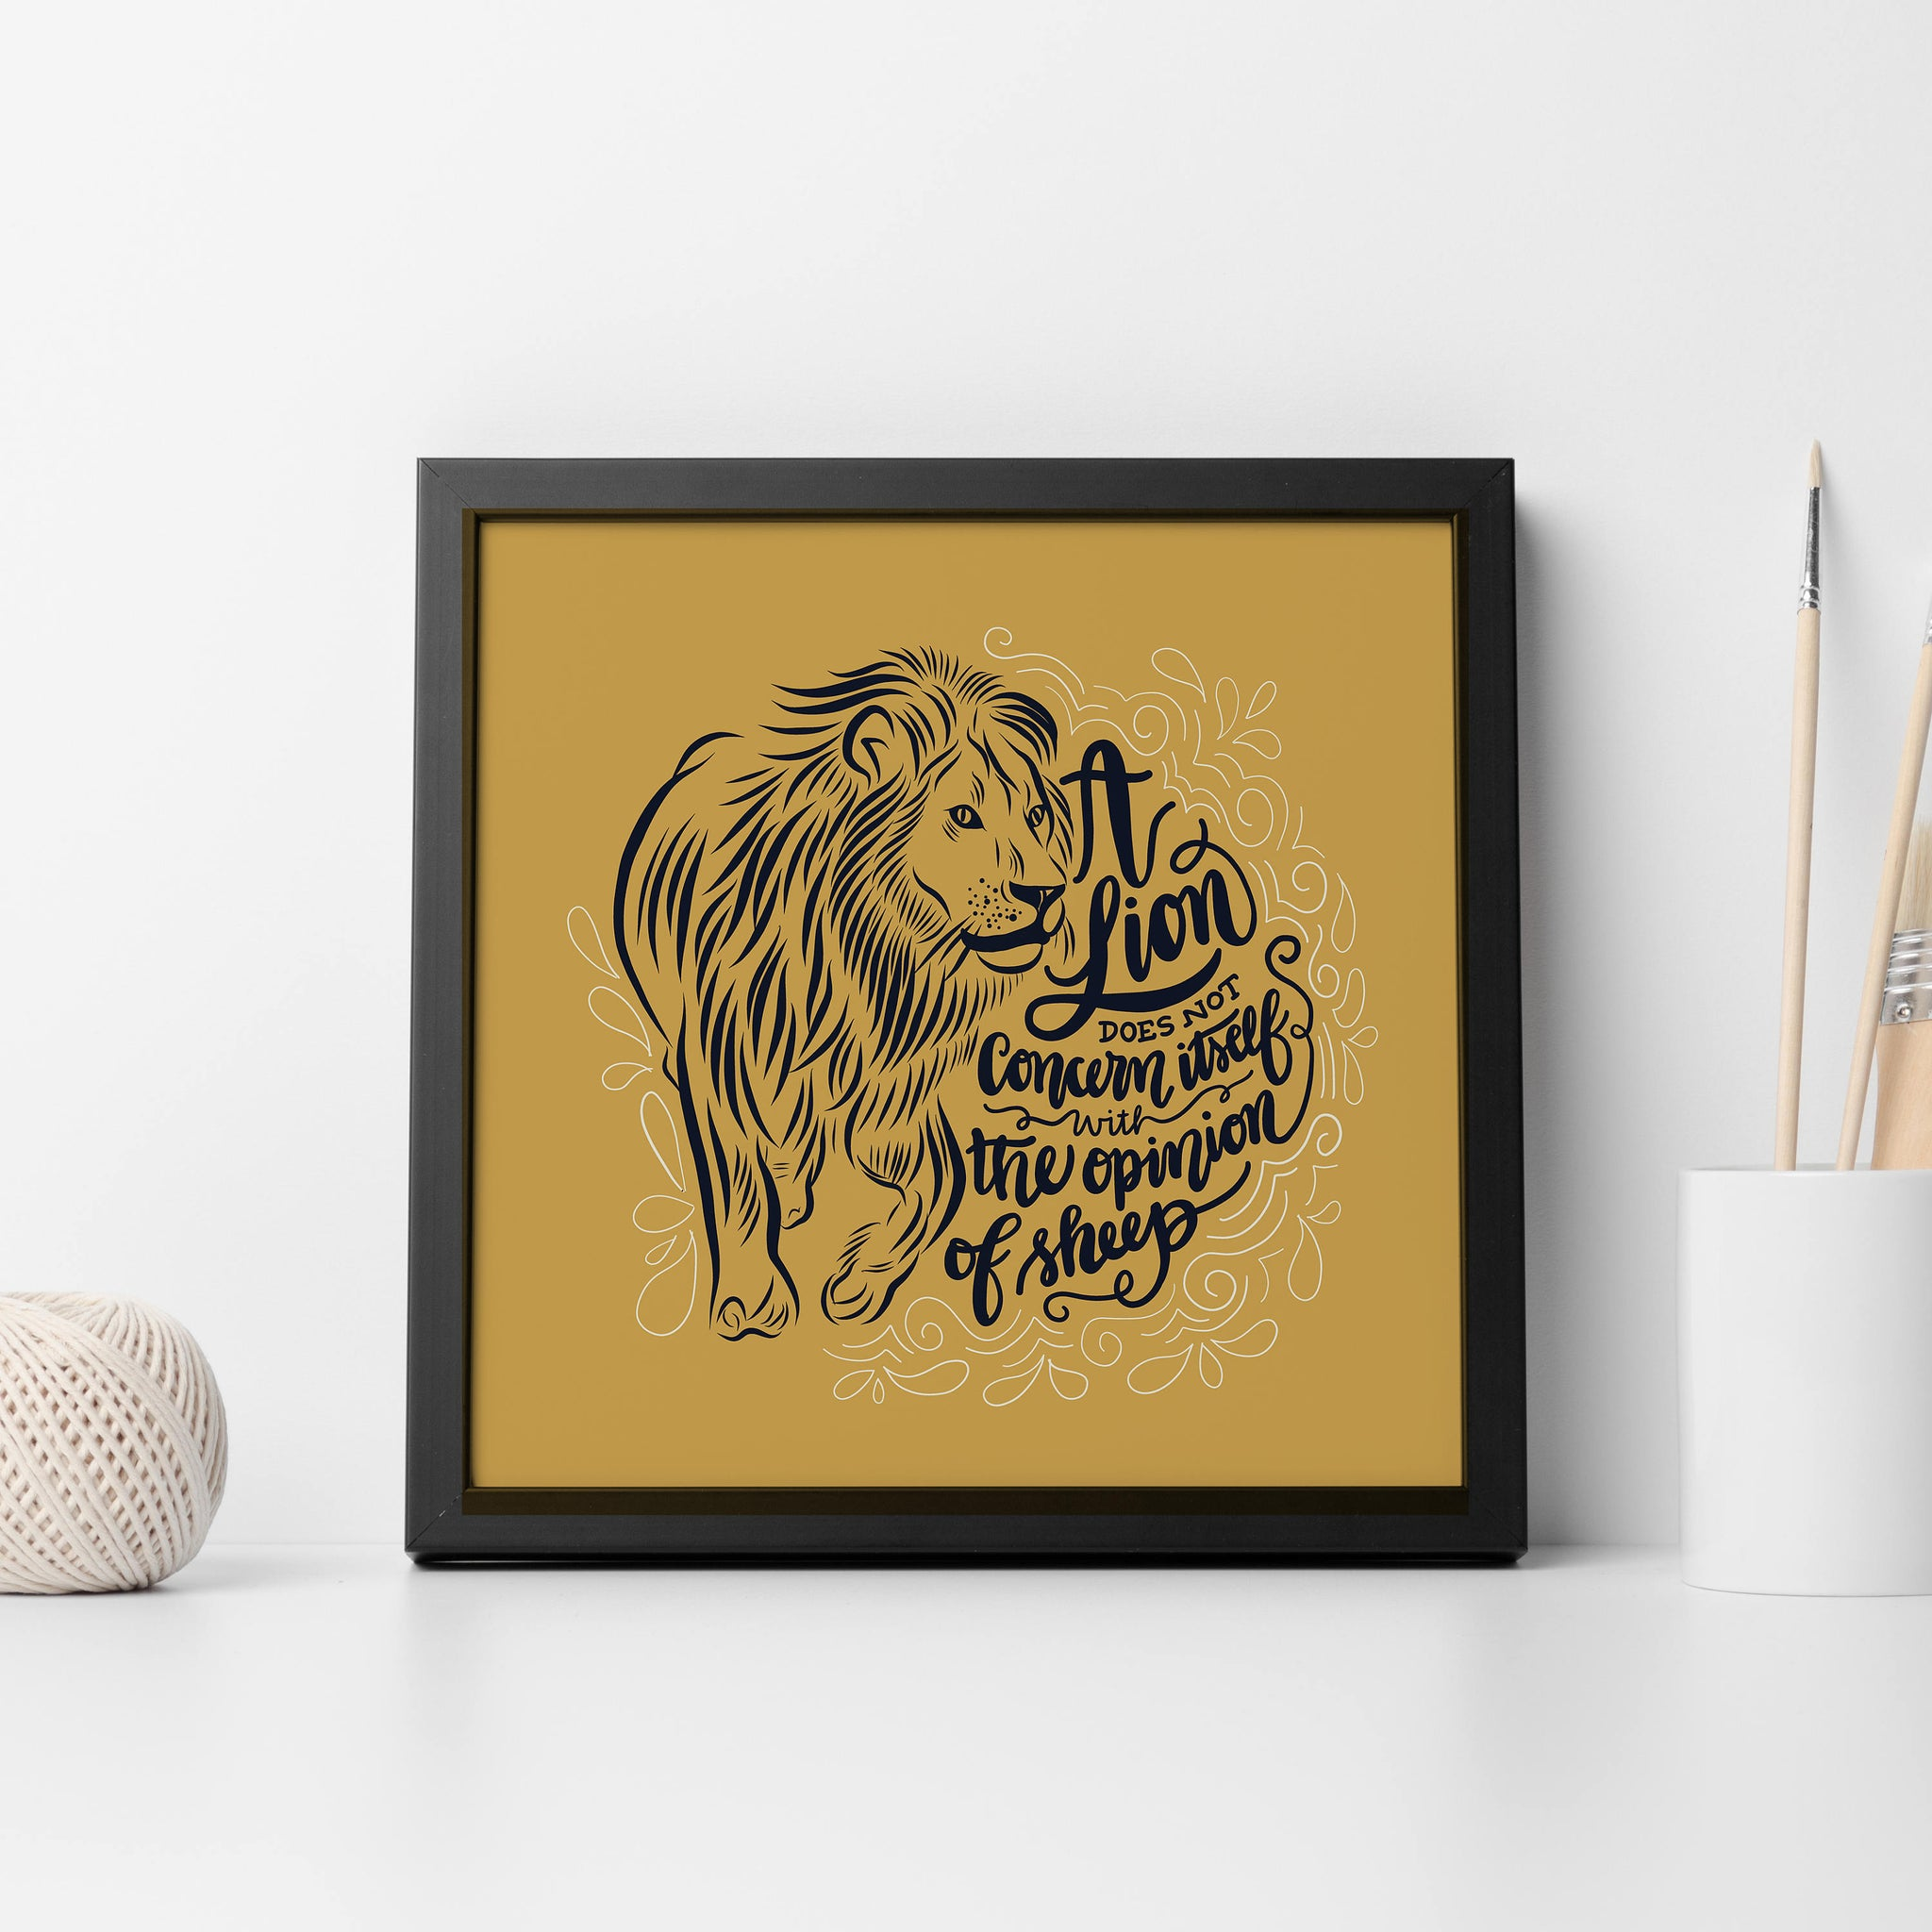 "A Lion Does Not Concern Itself With The Opinion of Sheep - Illustration - Digital Art - 12"" x 12"""